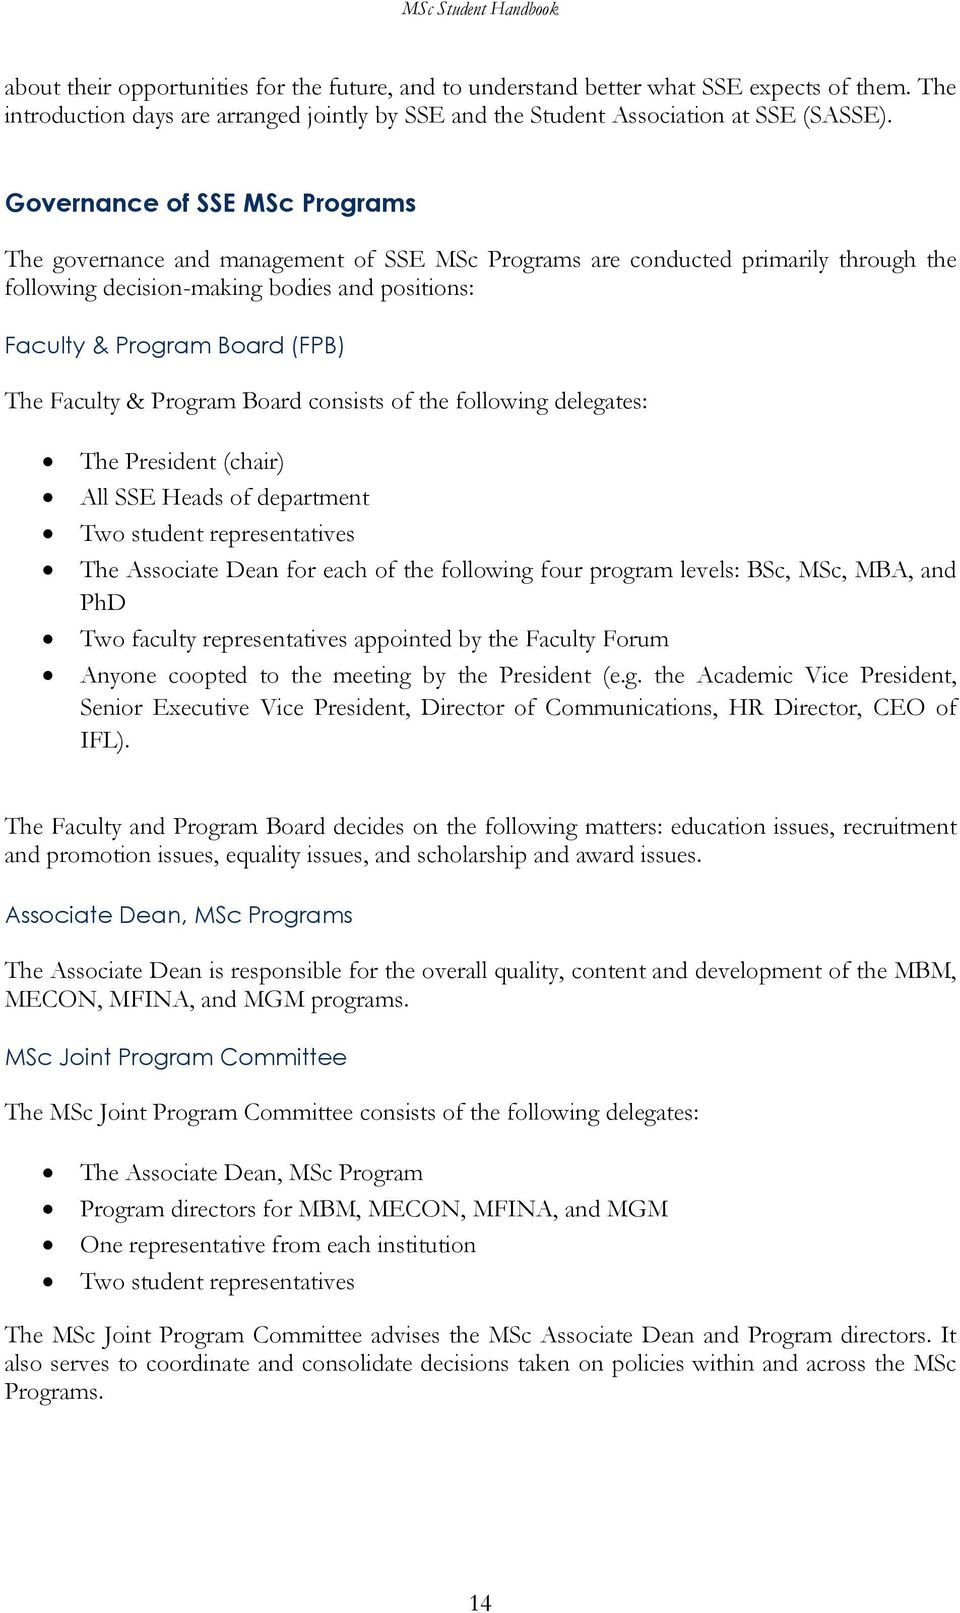 Faculty & Program Board consists of the following delegates: The President (chair) All SSE Heads of department Two student representatives The Associate Dean for each of the following four program